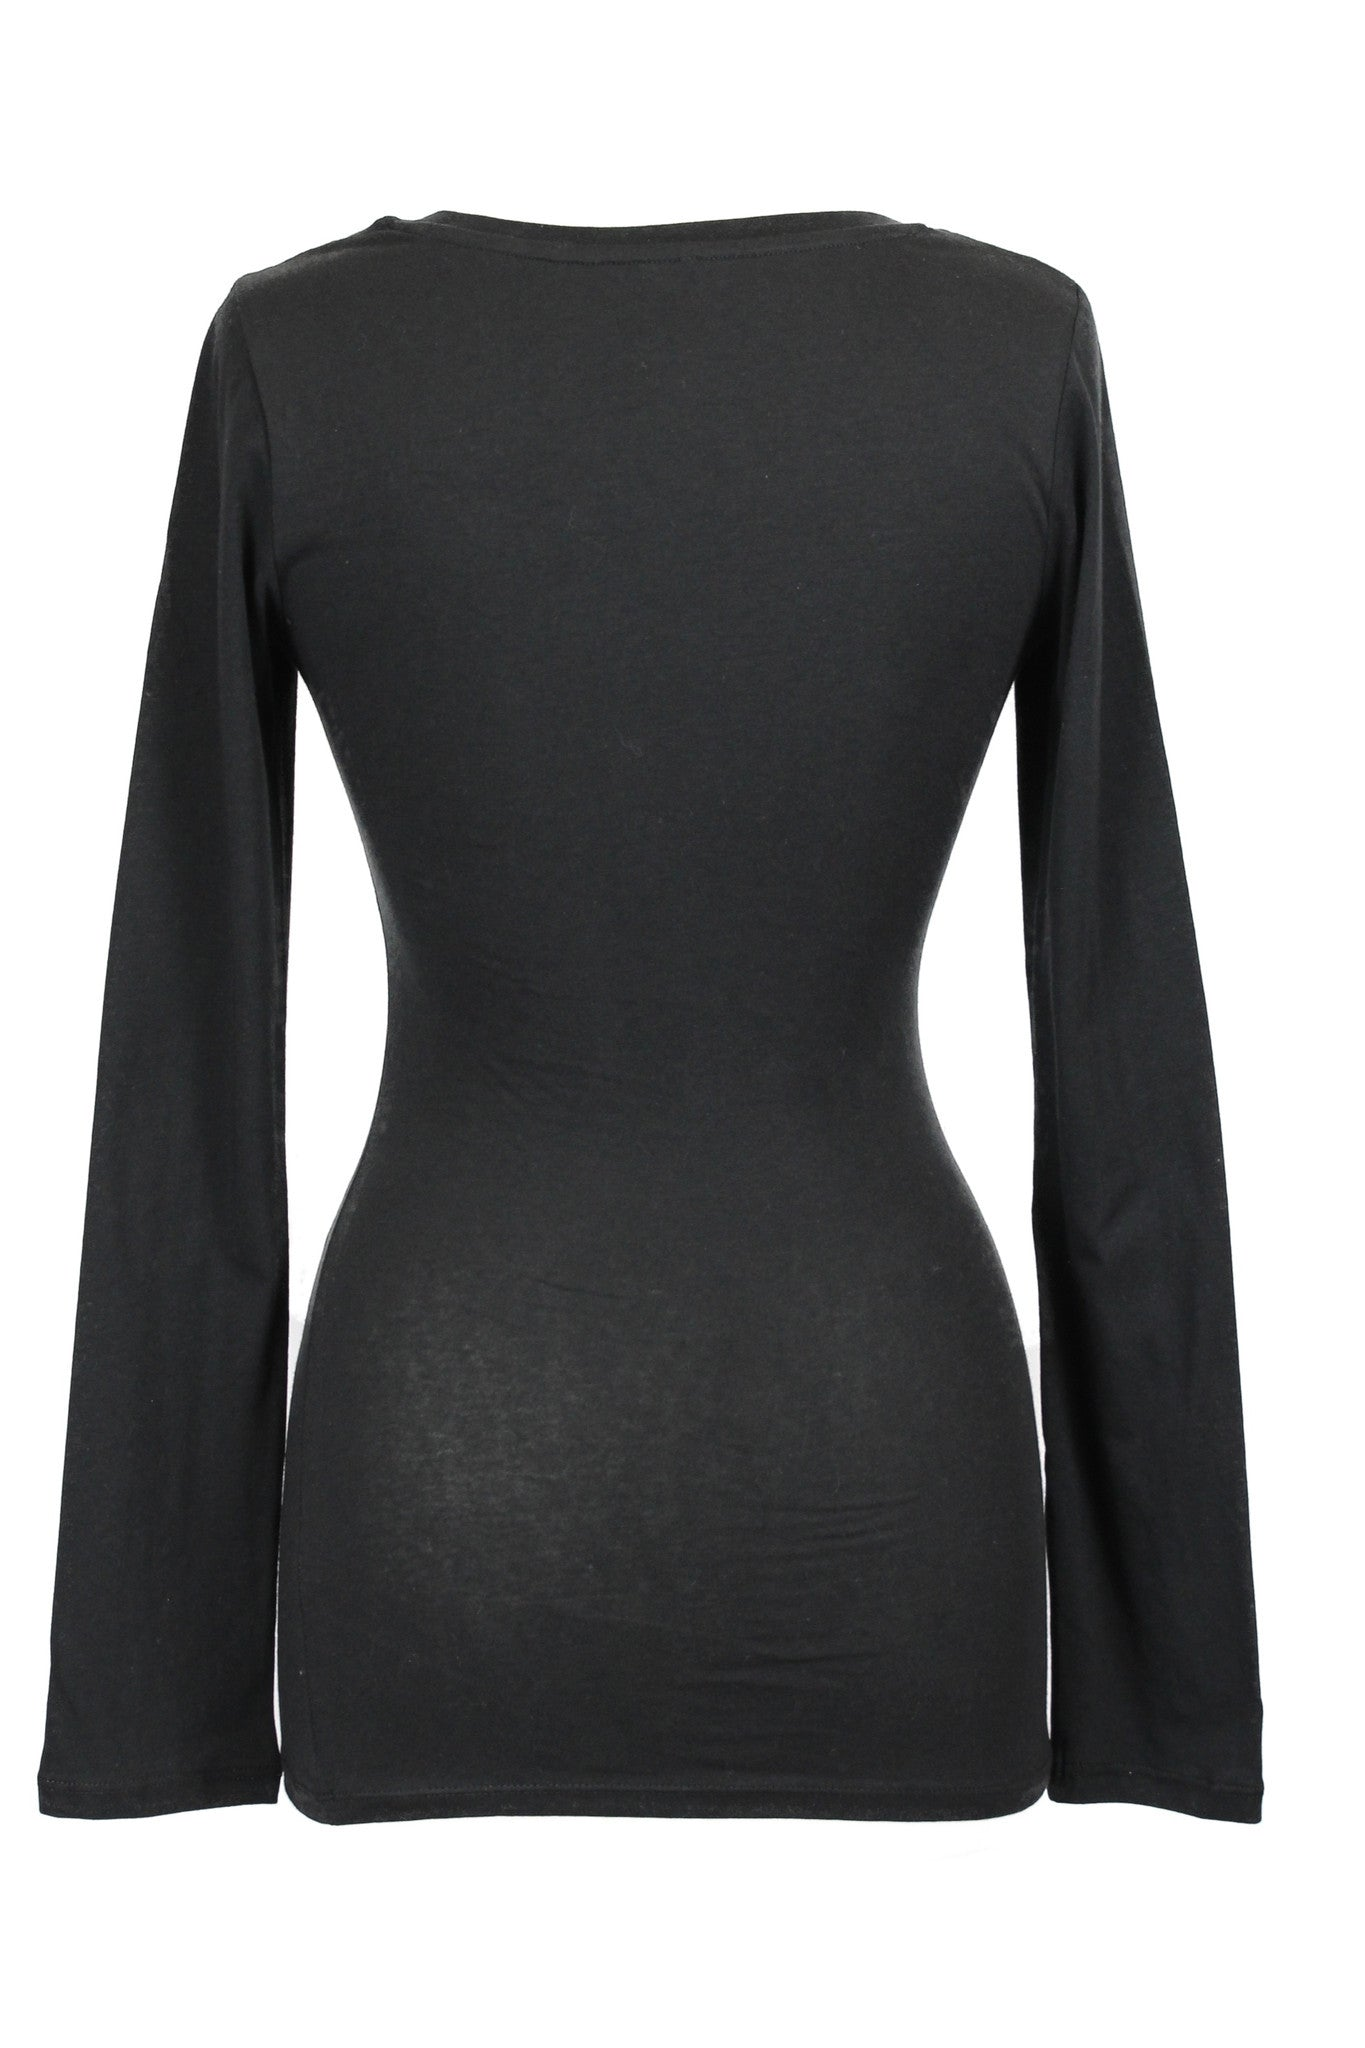 Basic Long Sleeve Scoop Neck Jersey Top - Black